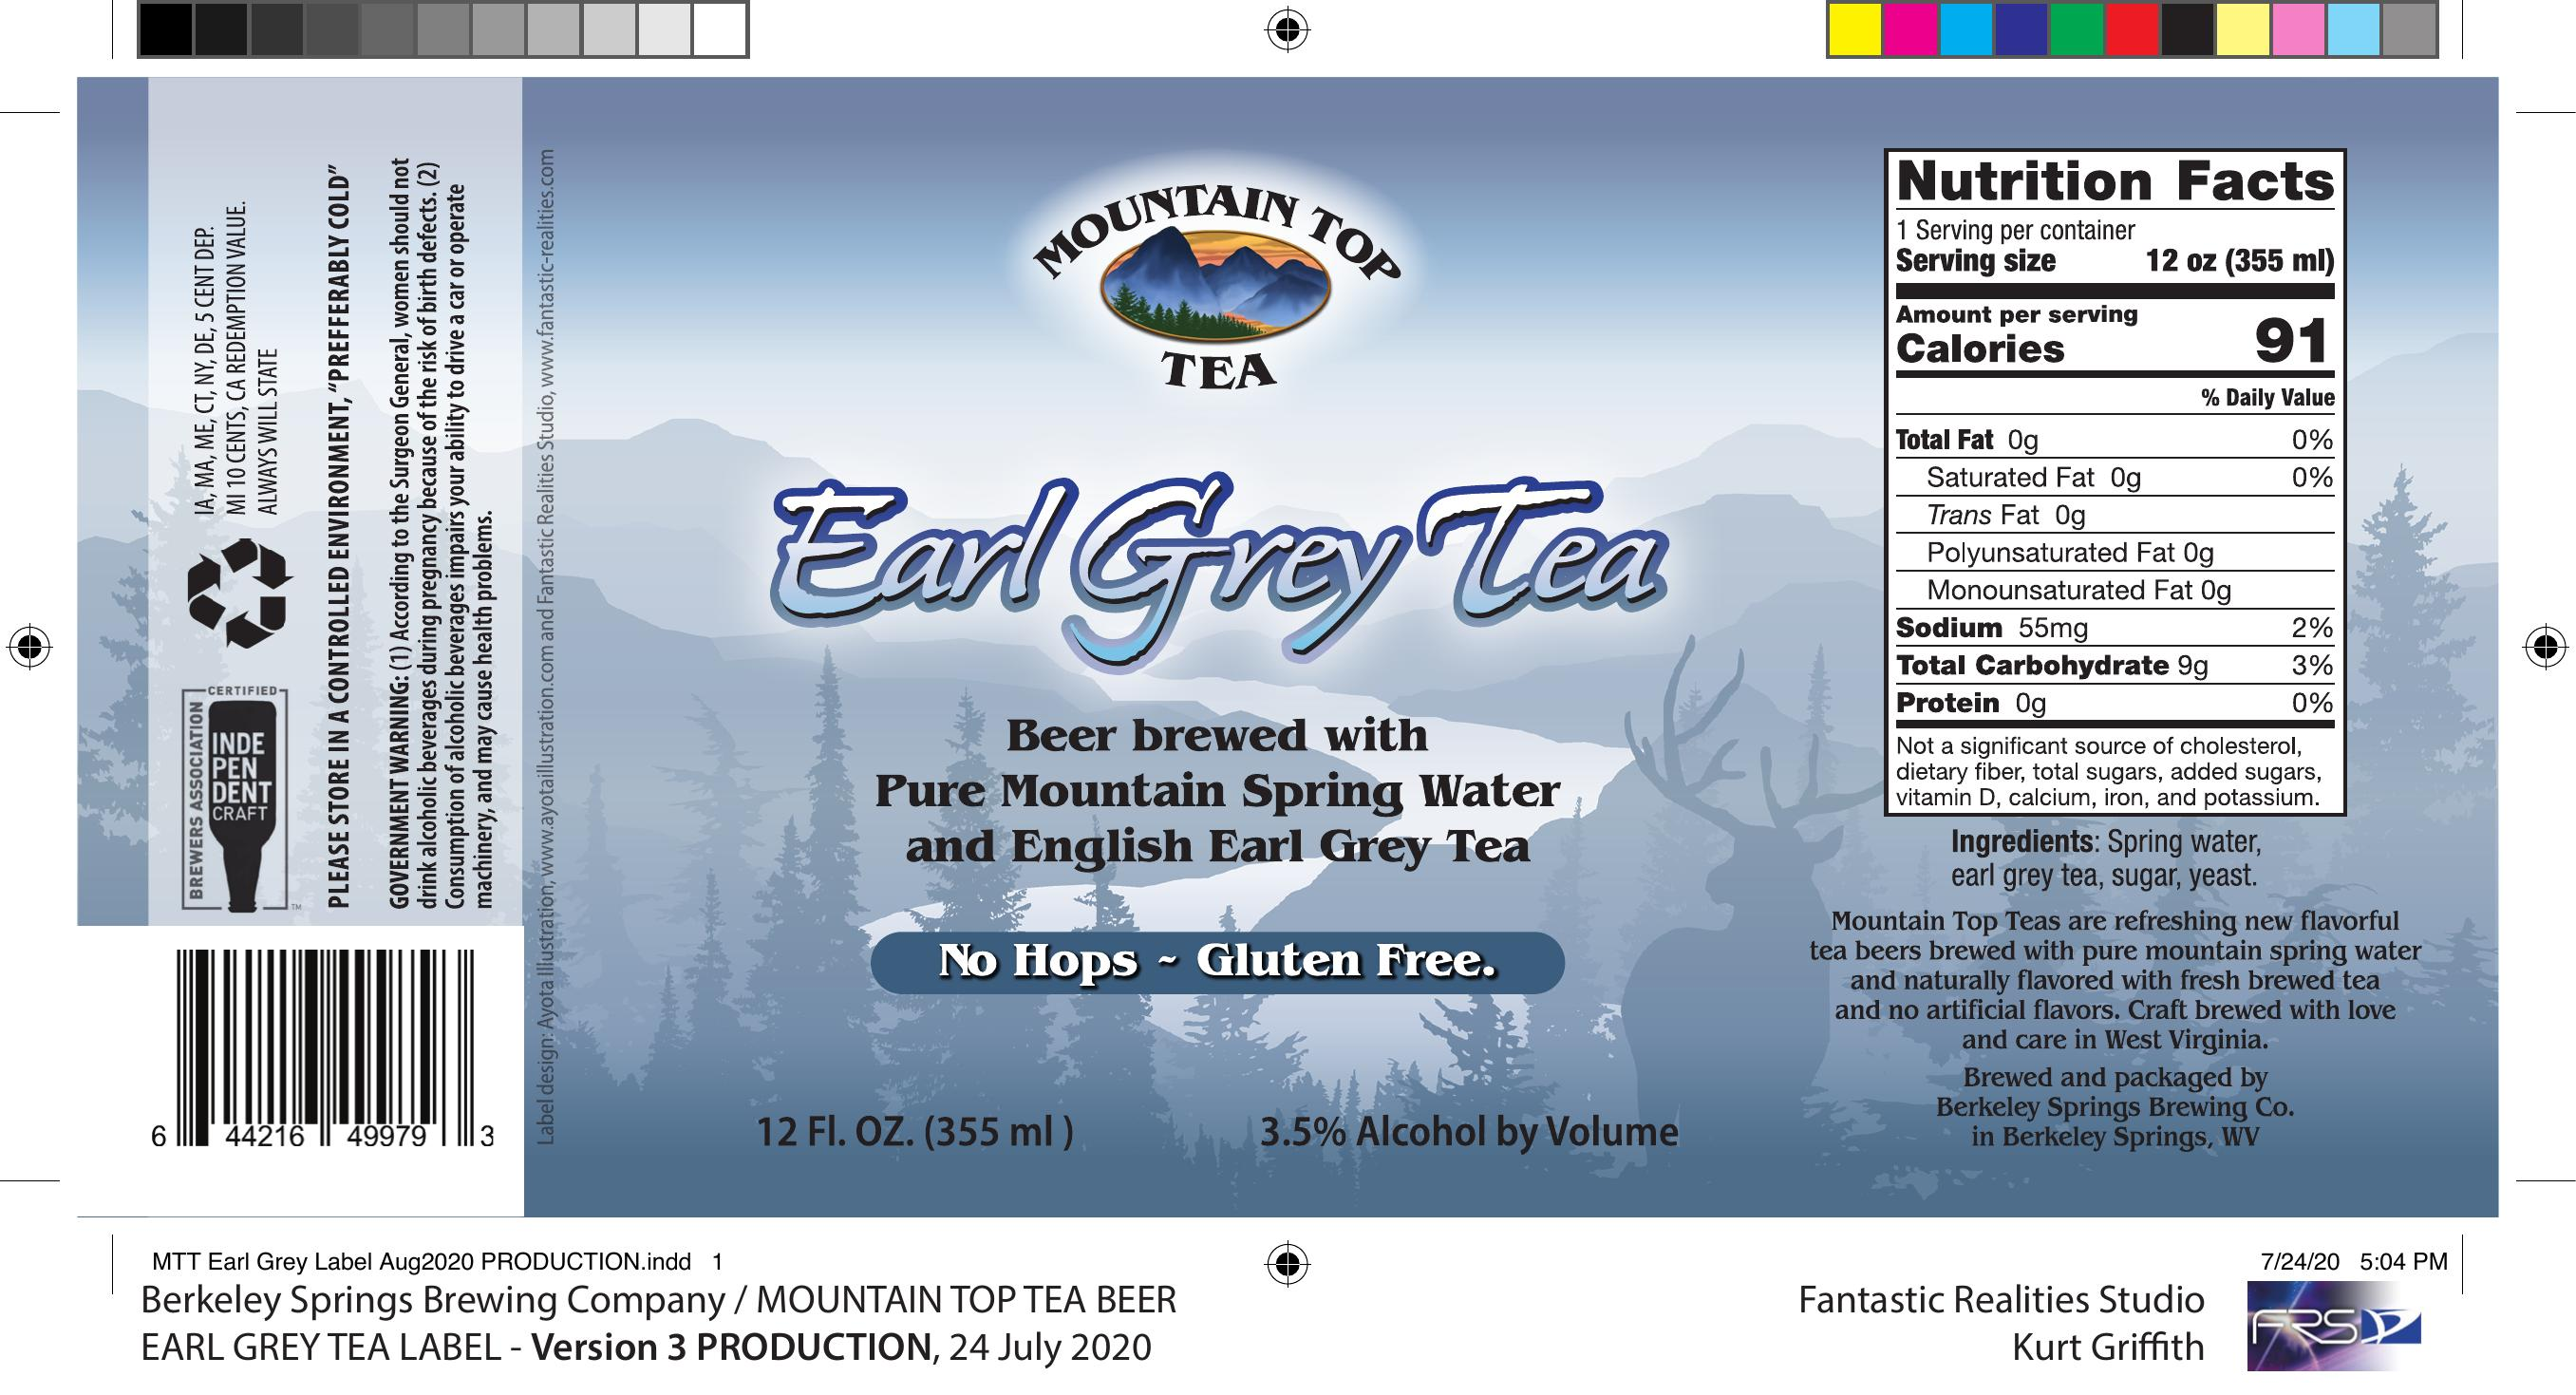 MTT Earl Grey Label Aug2020 PRESS